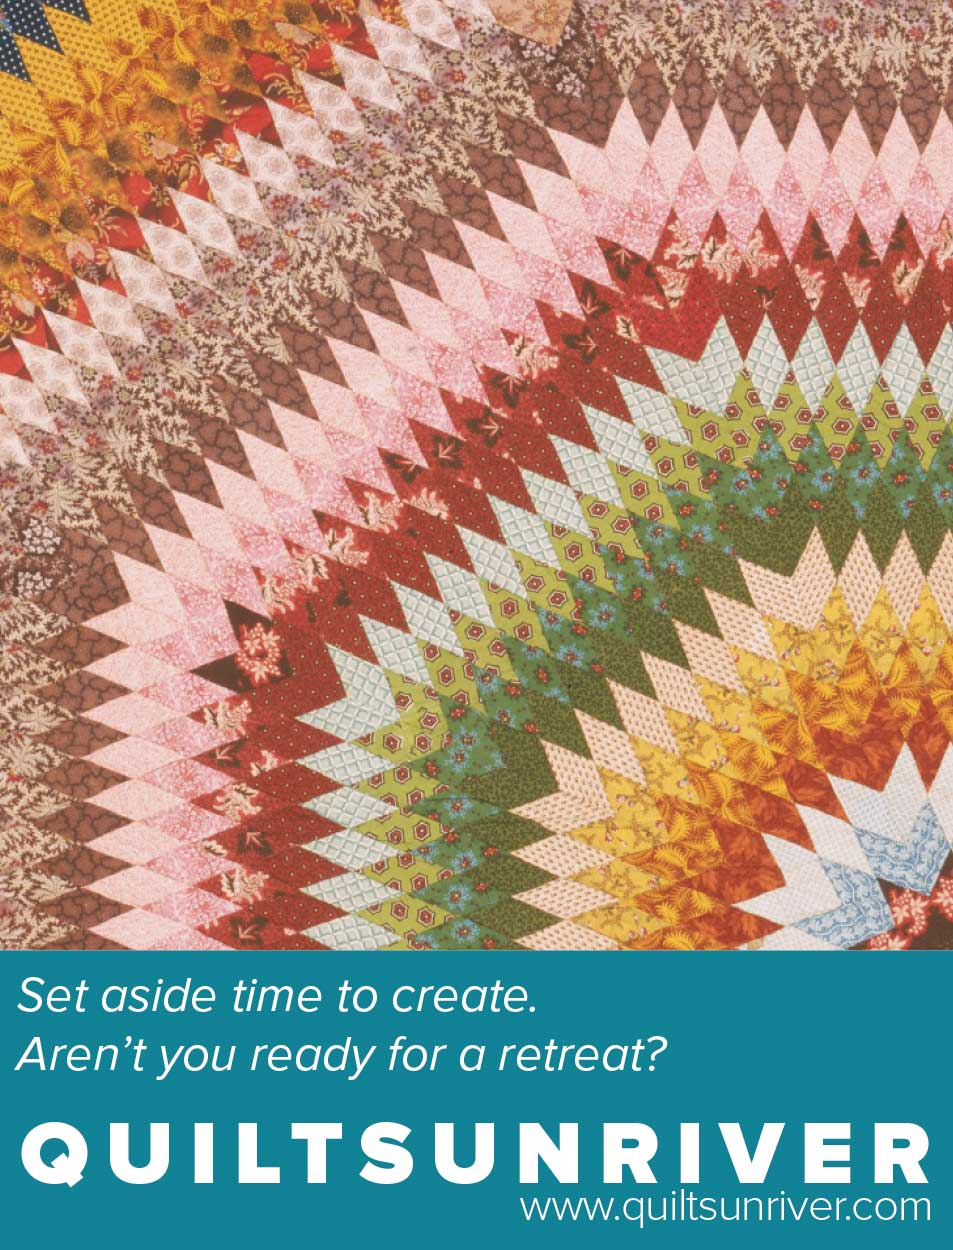 Set aside your time to create.